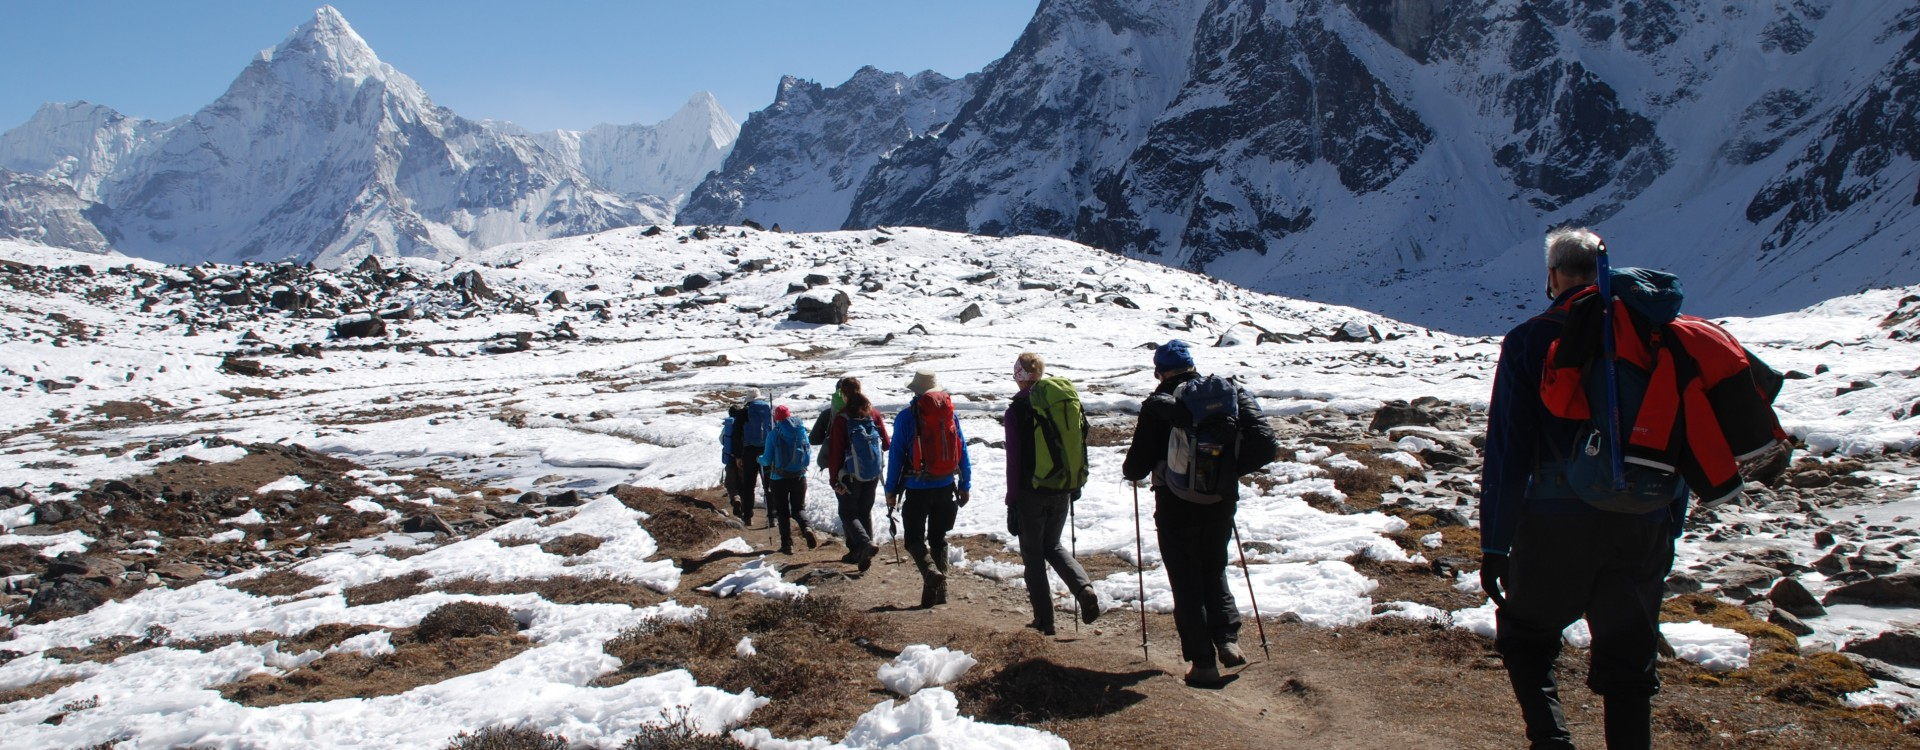 Trekking towards Ama Dablam